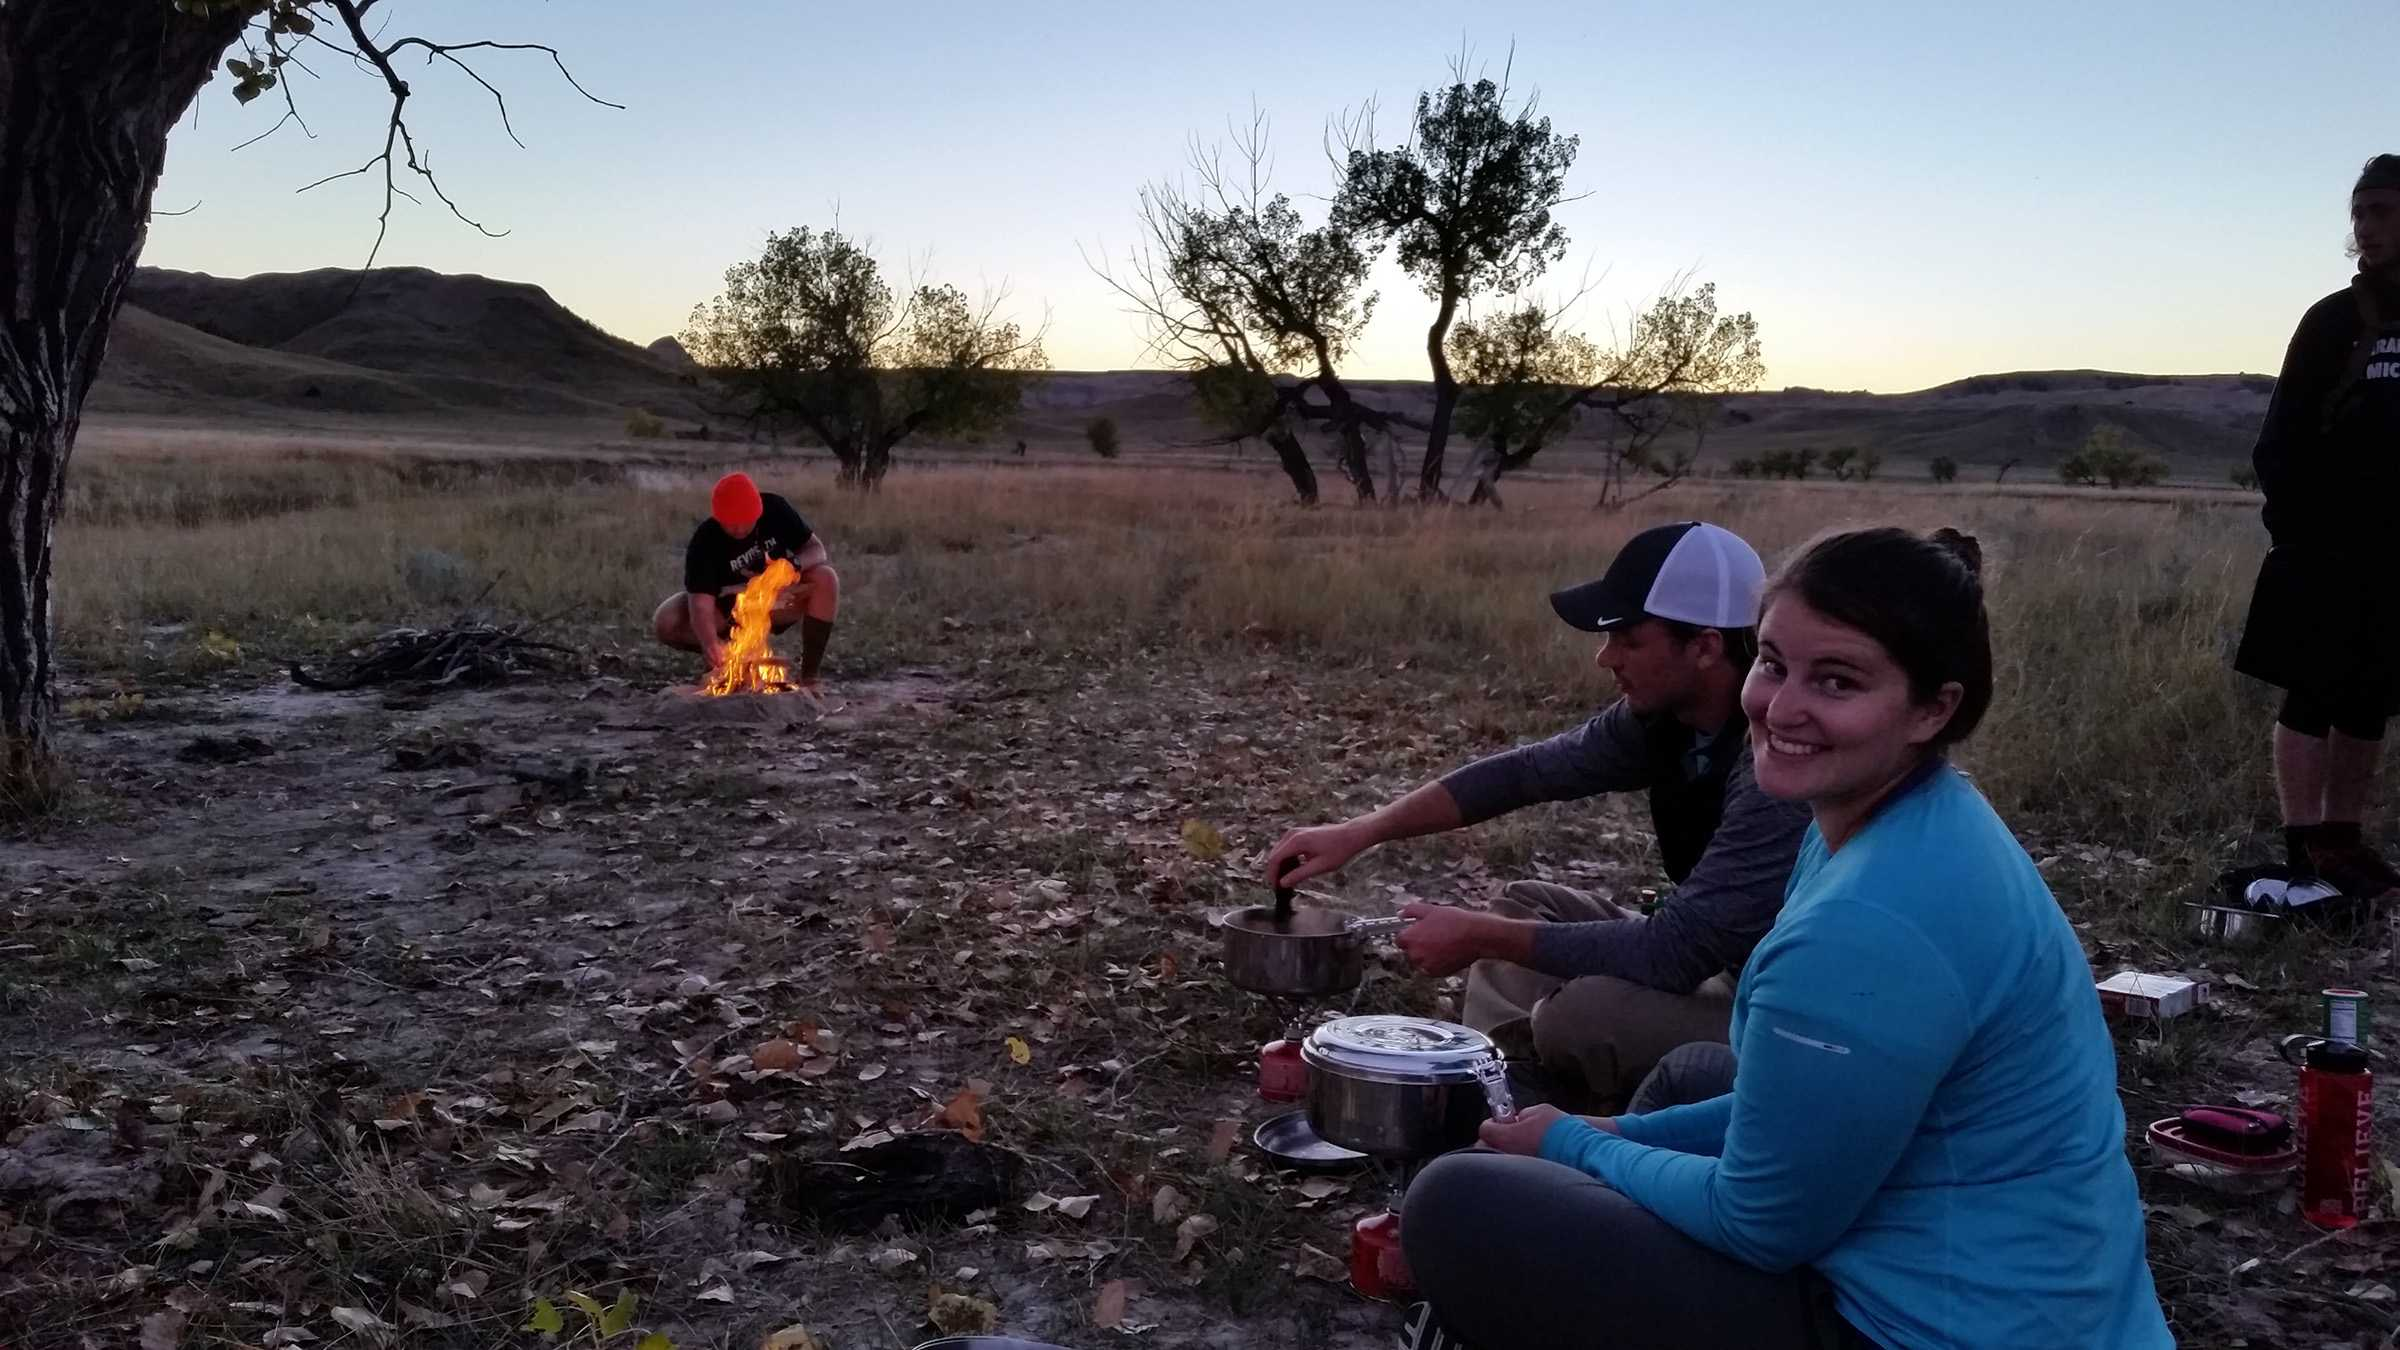 SUBMITTED Amy Cornish prepares a meal over a fire while camping on the 2016 trip to Buffalo Gap National Grasslands near Scenic, SD.